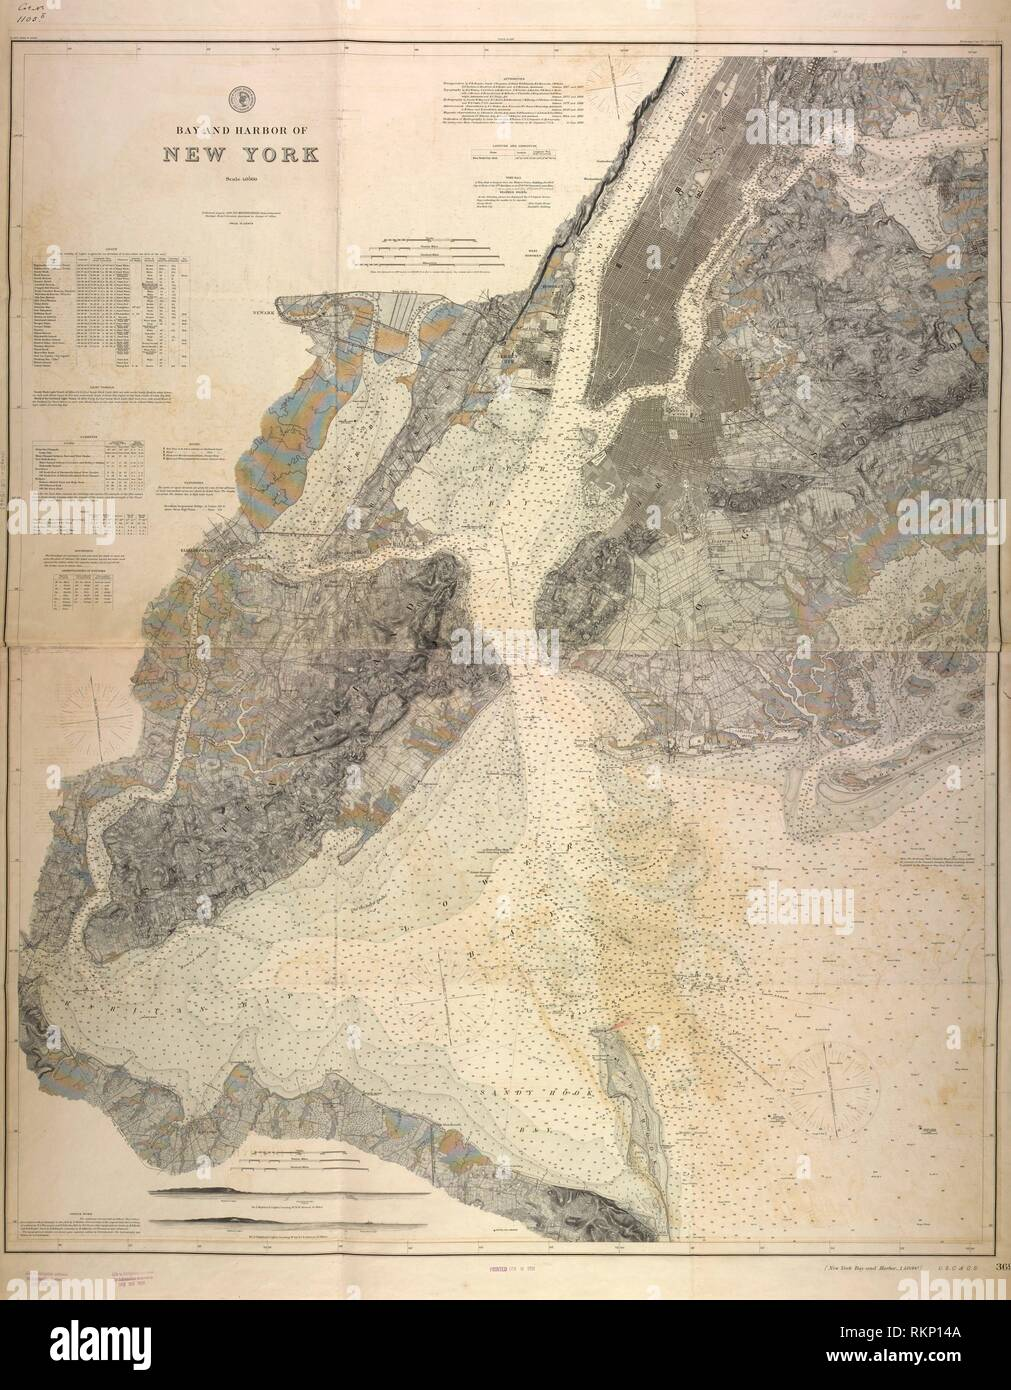 Bay and harbor of New York. U.S. Coast and Geodetic Survey ...